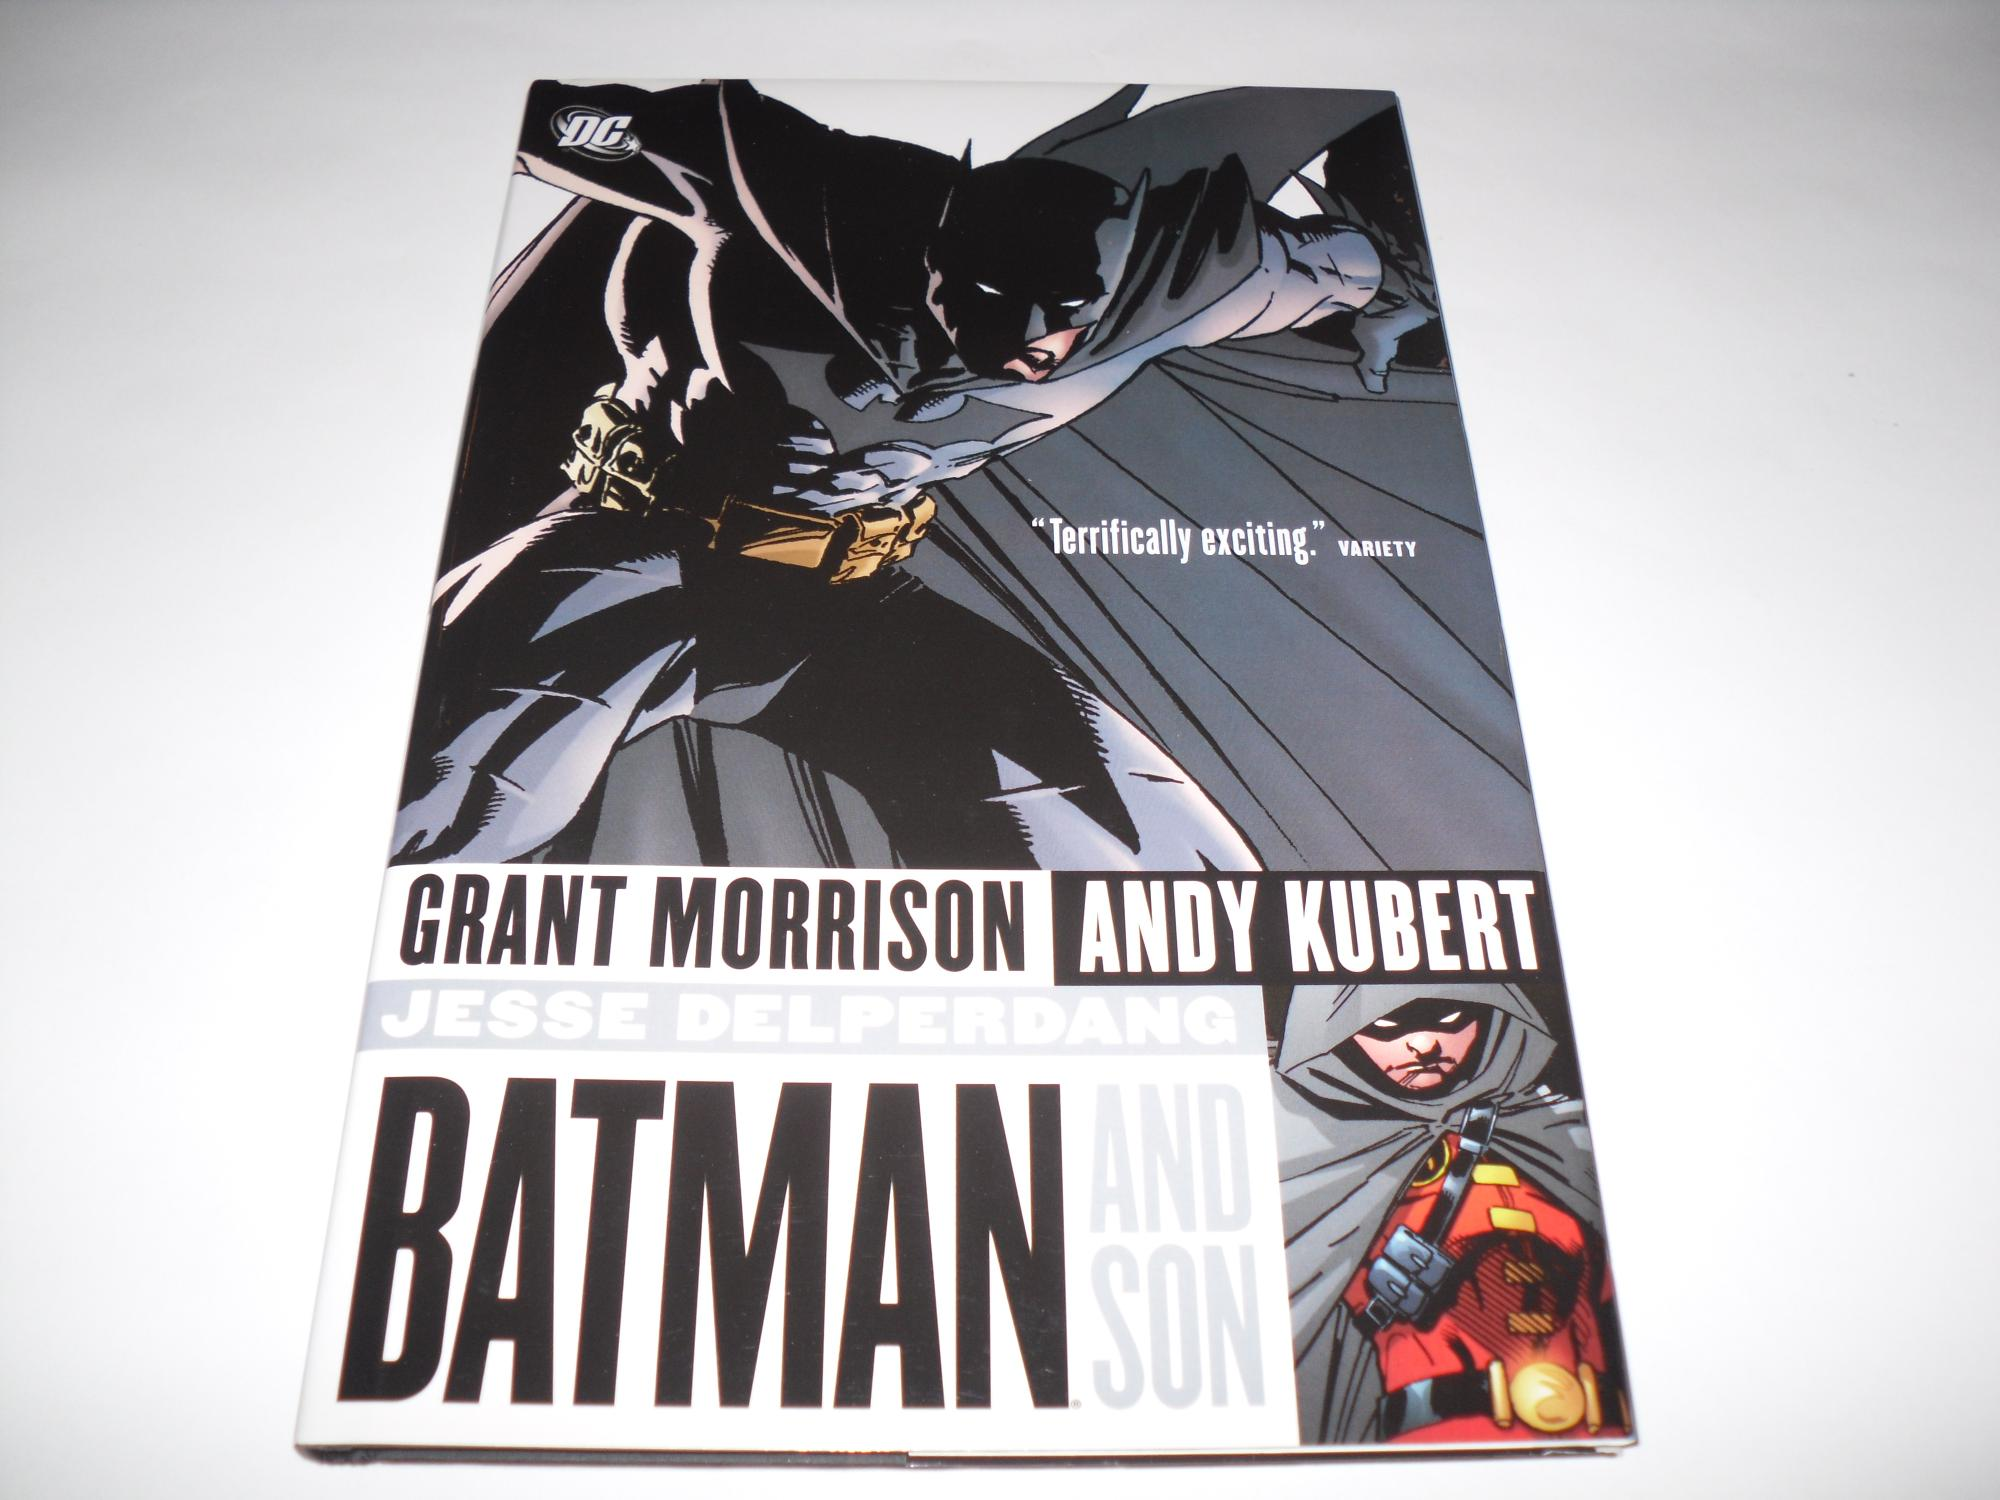 Batman And Son Signed W Doodle Photo By Morrison Grant Andy